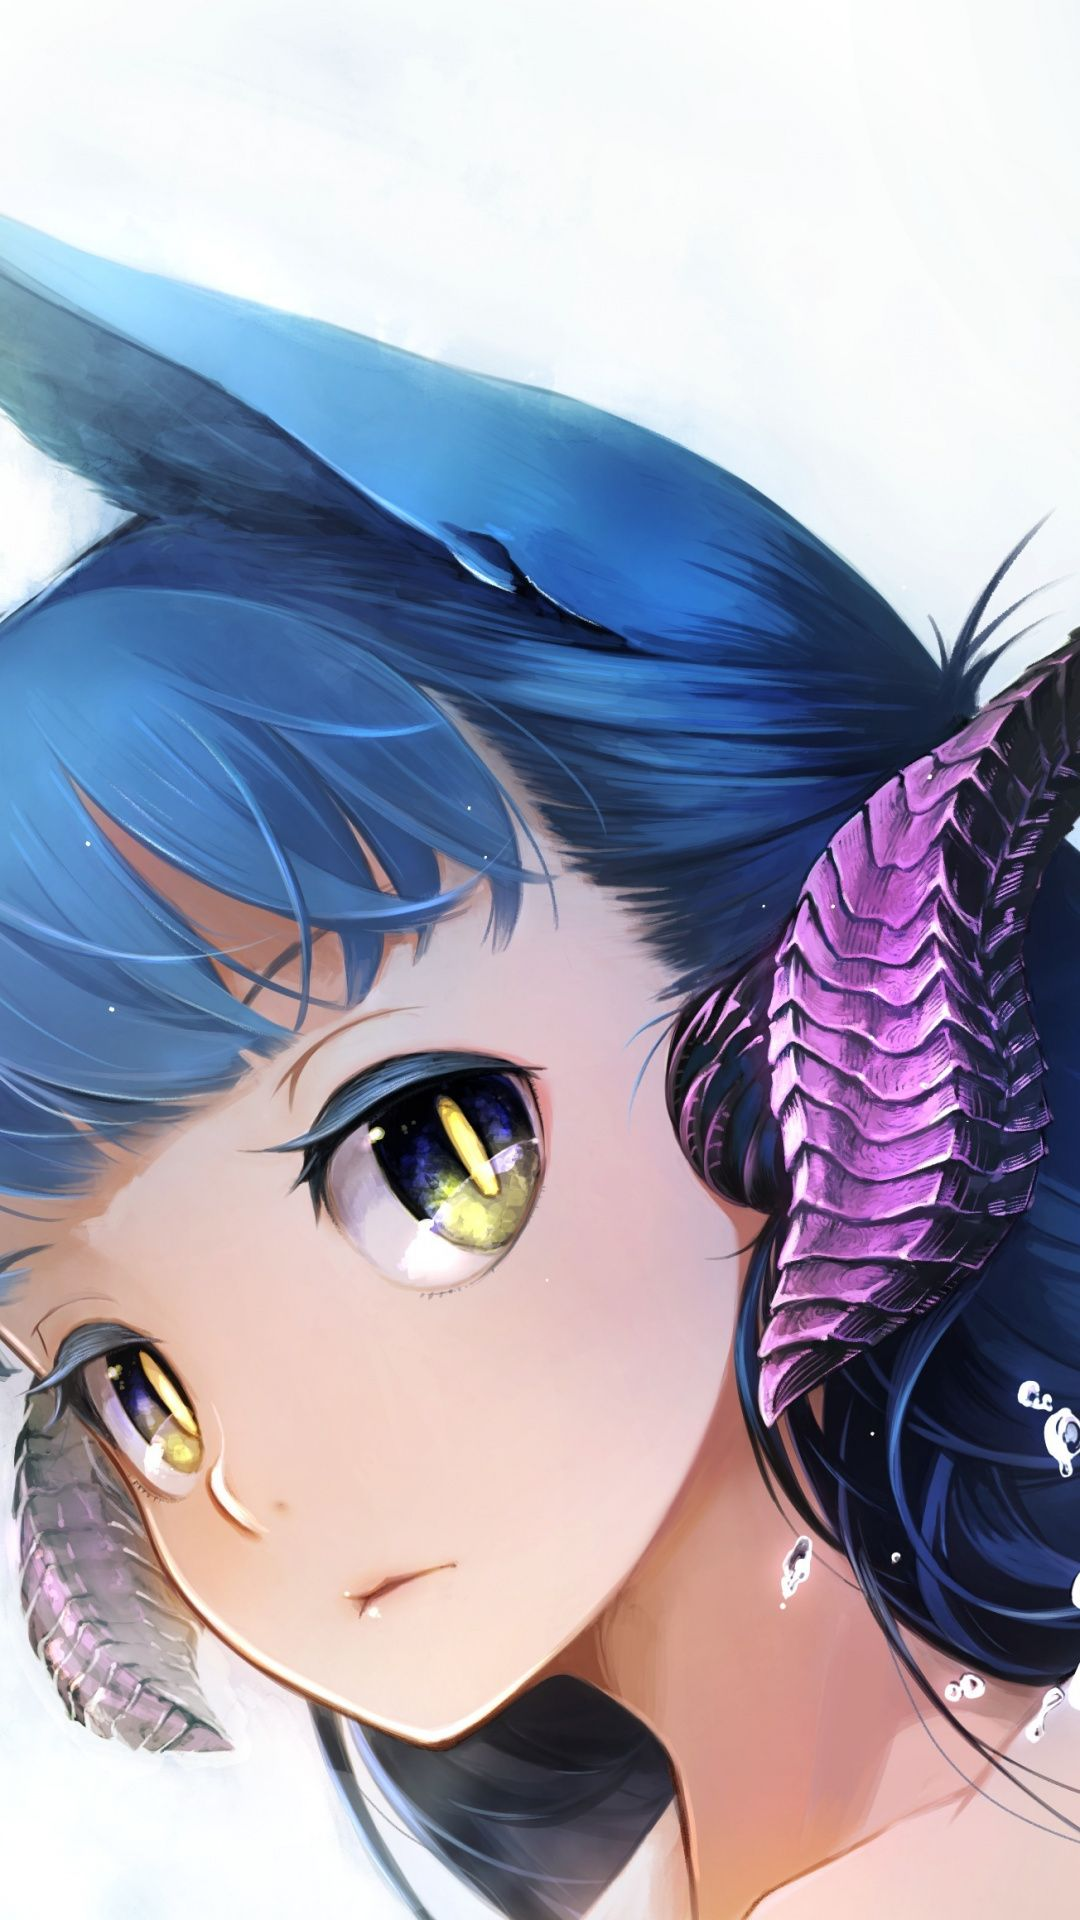 Wallpapers Smile Blue Hair Girl Creative Arts Fictional Character Anime Background Creative Art Character Wallpaper